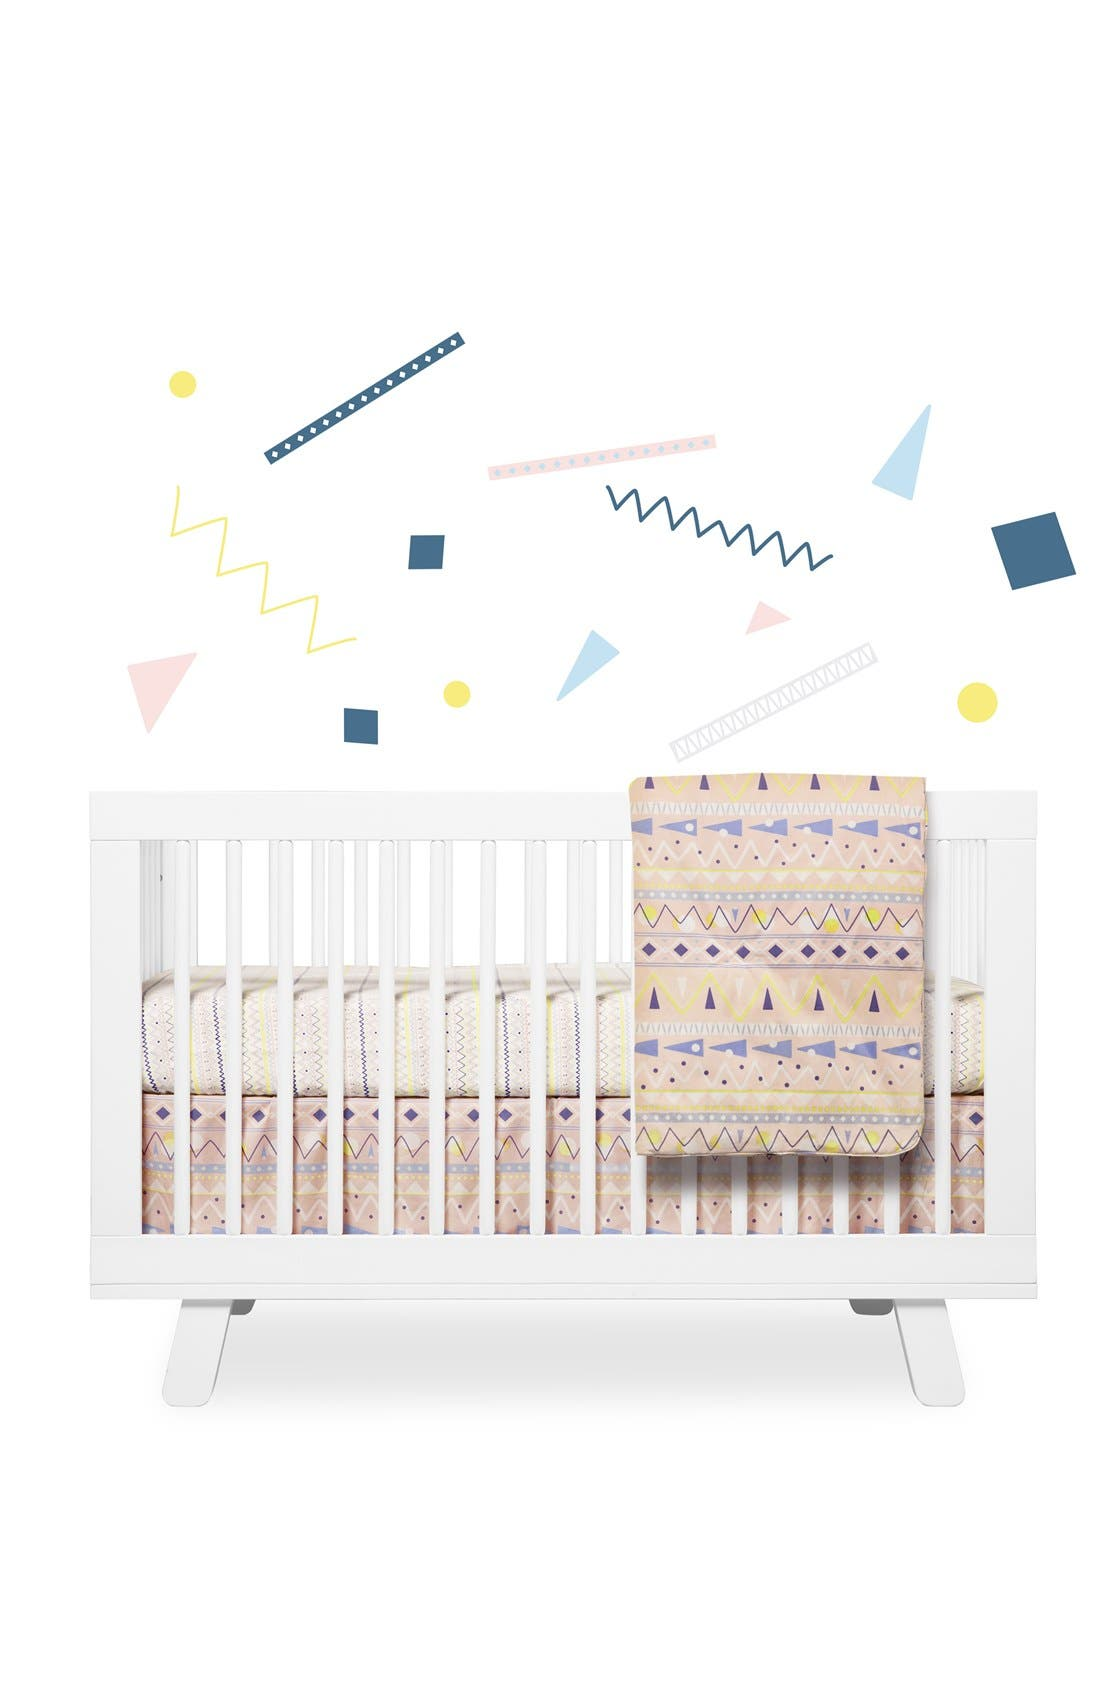 babyletto 'Desert' Crib Sheet, Crib Skirt, Changing Pad Cover, Blanket & Wall Decals